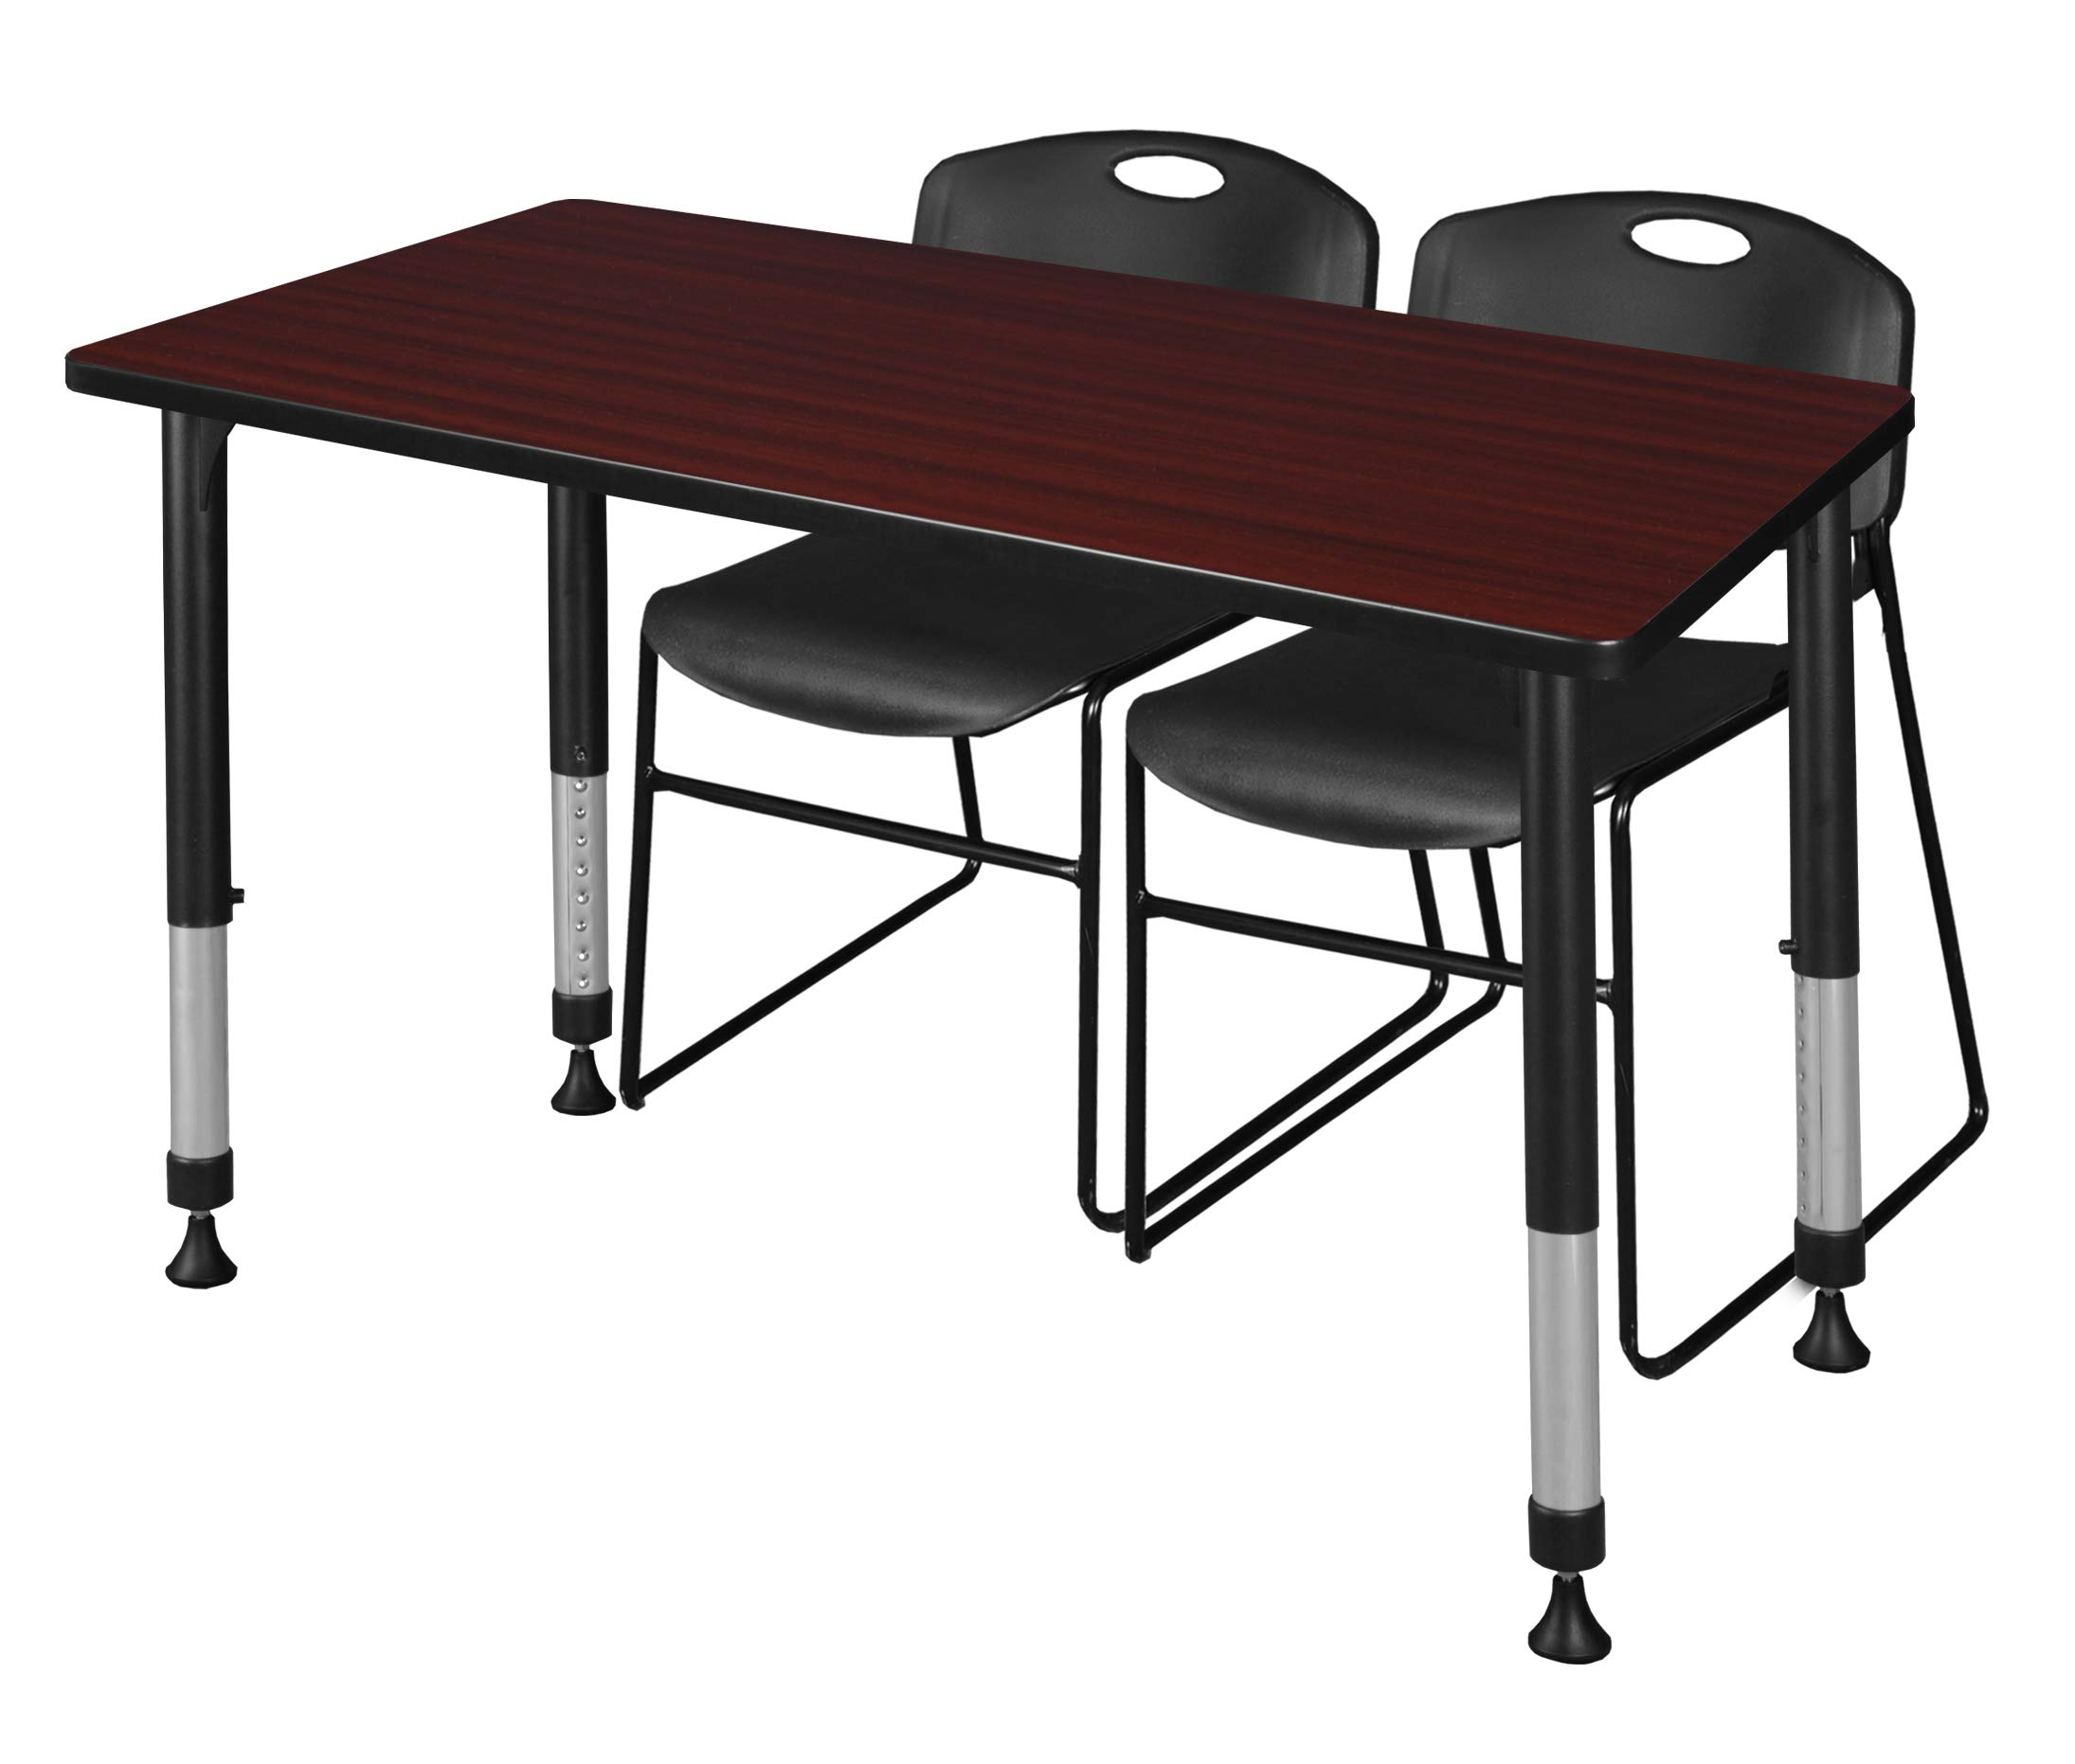 Regency MT4830MHAPBK44BK Kee Height Adjustable Classroom Table Set with Two Zeng Chairs 48'' x 30'' Mahogany/Black